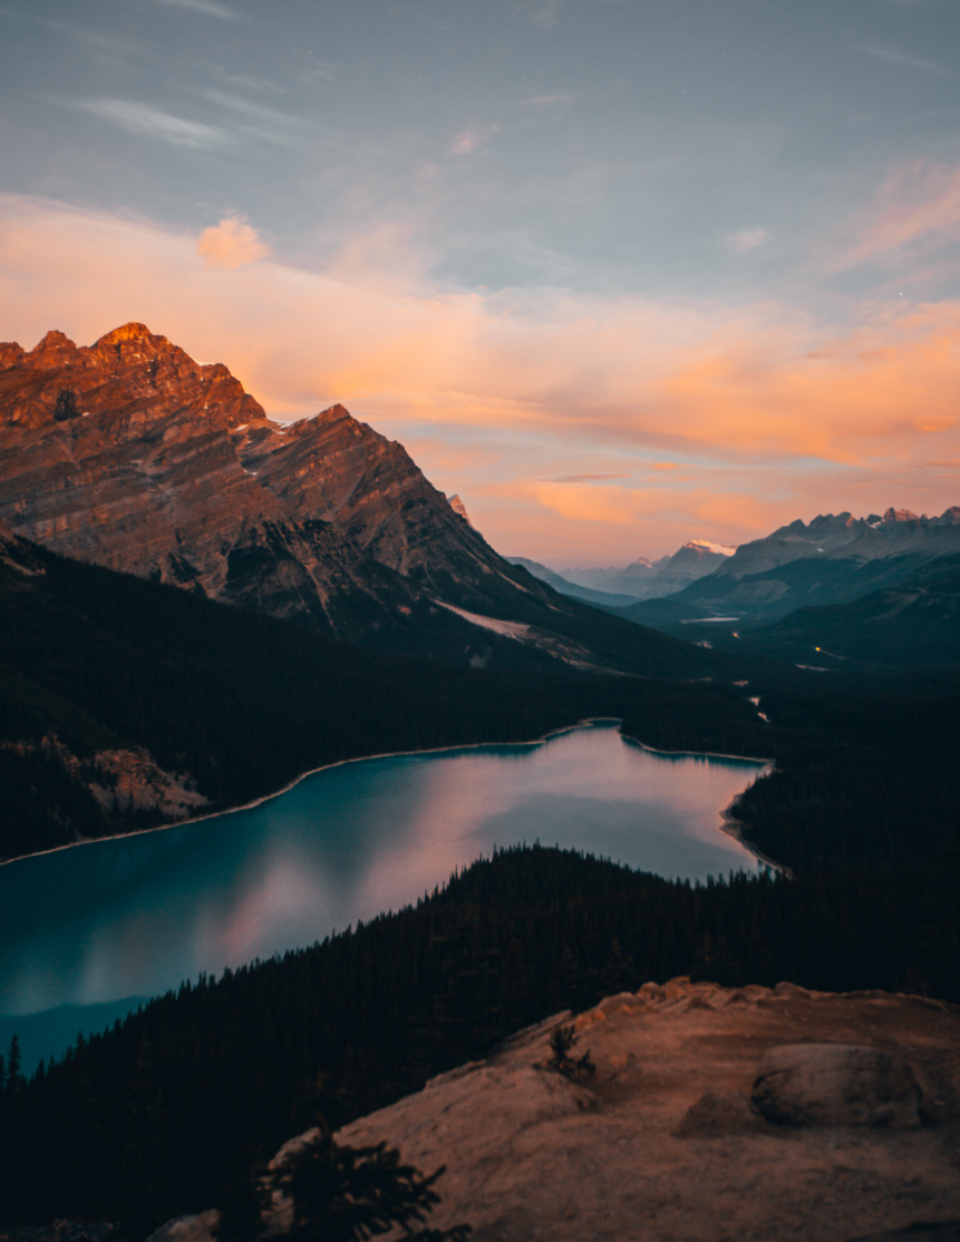 mountain lake dusk sunset sky clouds nature outdoors landscape water explore travel hike adventure wanderlust scenic view